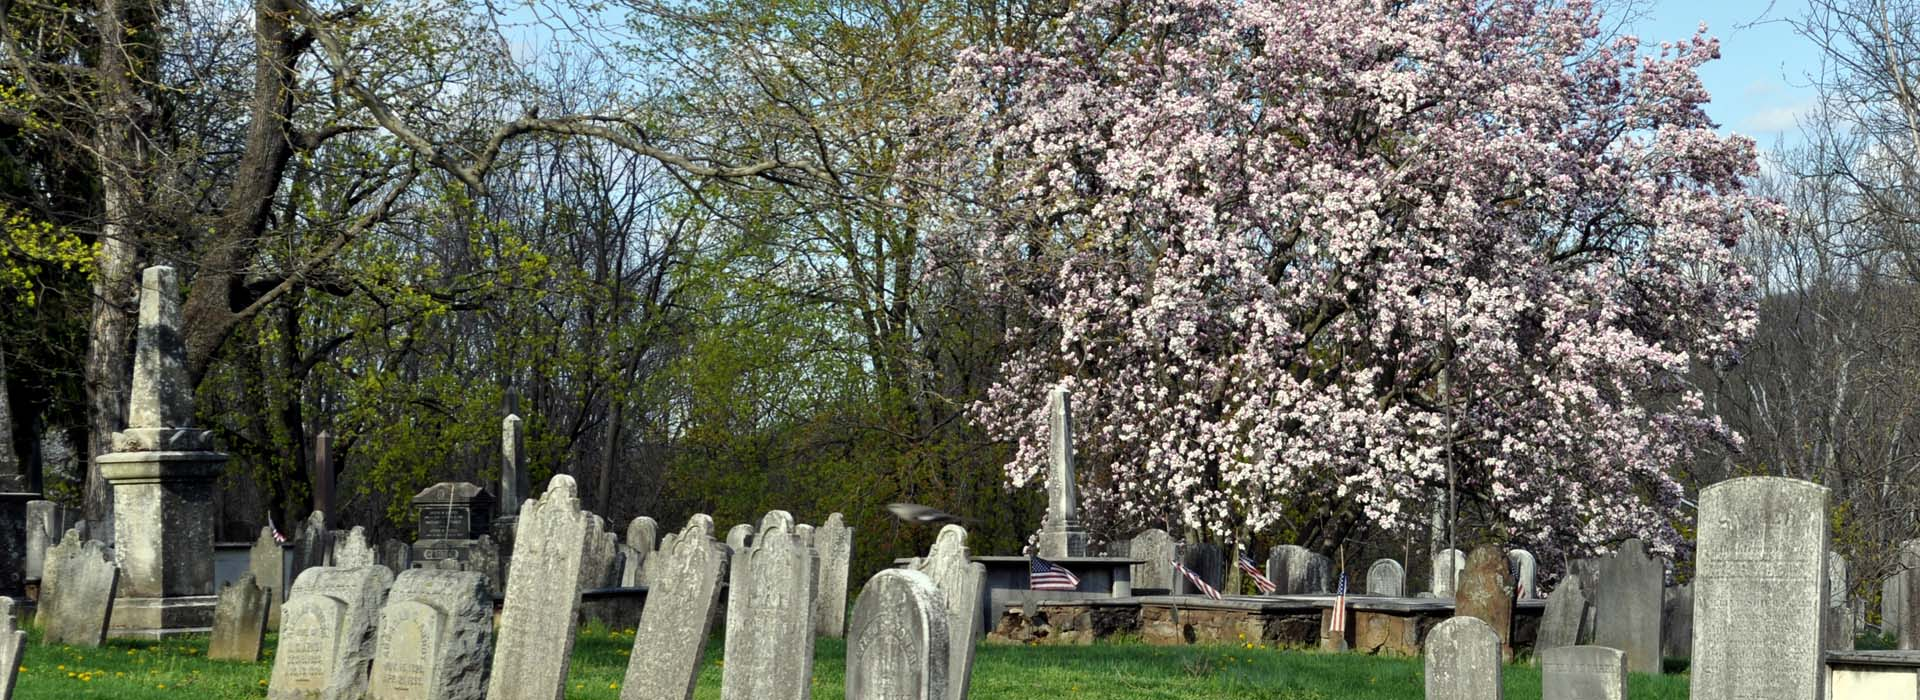 The oldest part of the cemetery dates back to 1775